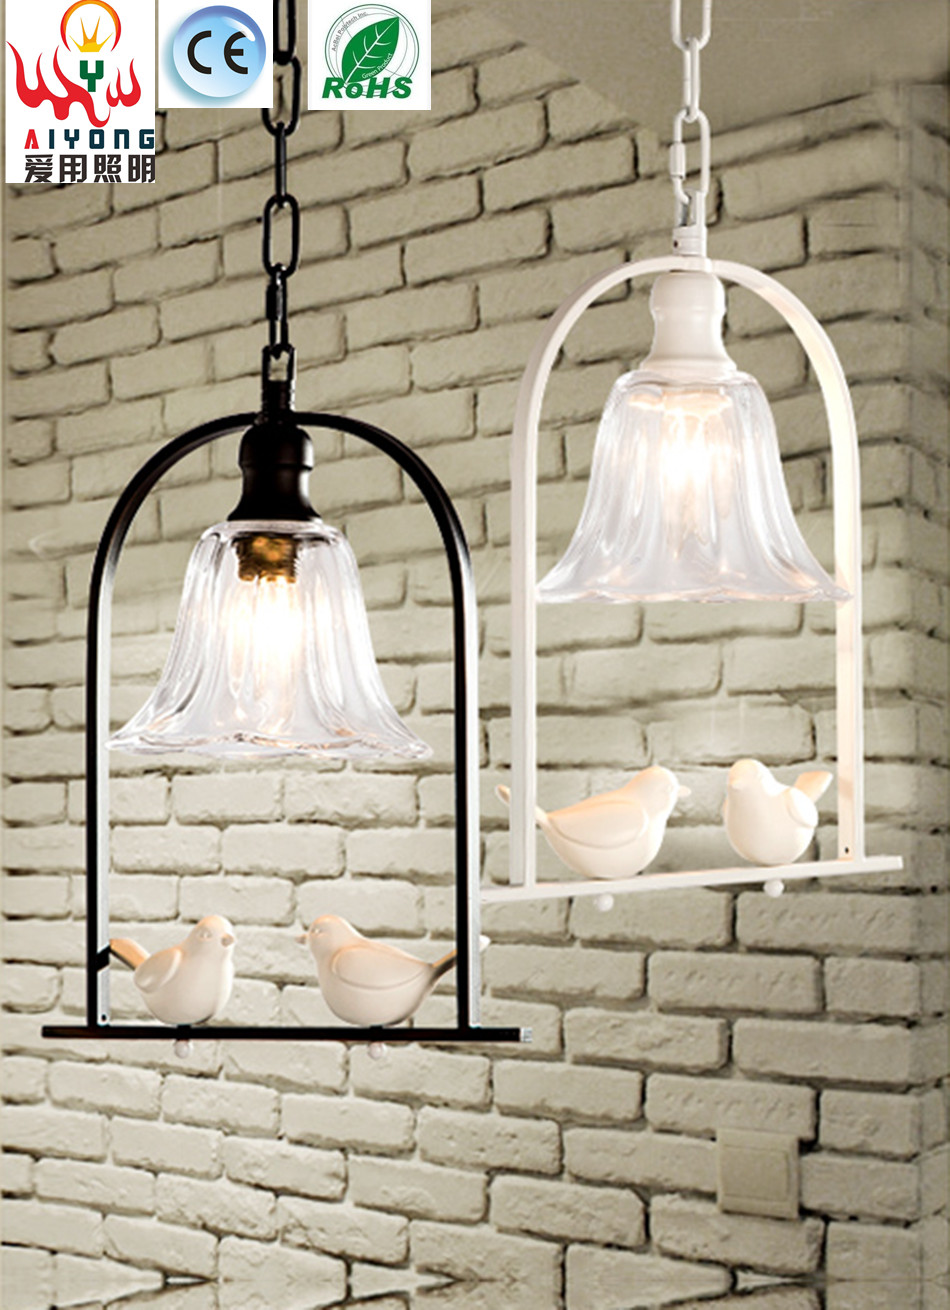 Simple single-head chandelier bird creative personality LED light bar restaurant cafe corridor for lighting study creative personality resin lamps corridor restaurant cafe bar study monkey droplight of children room light